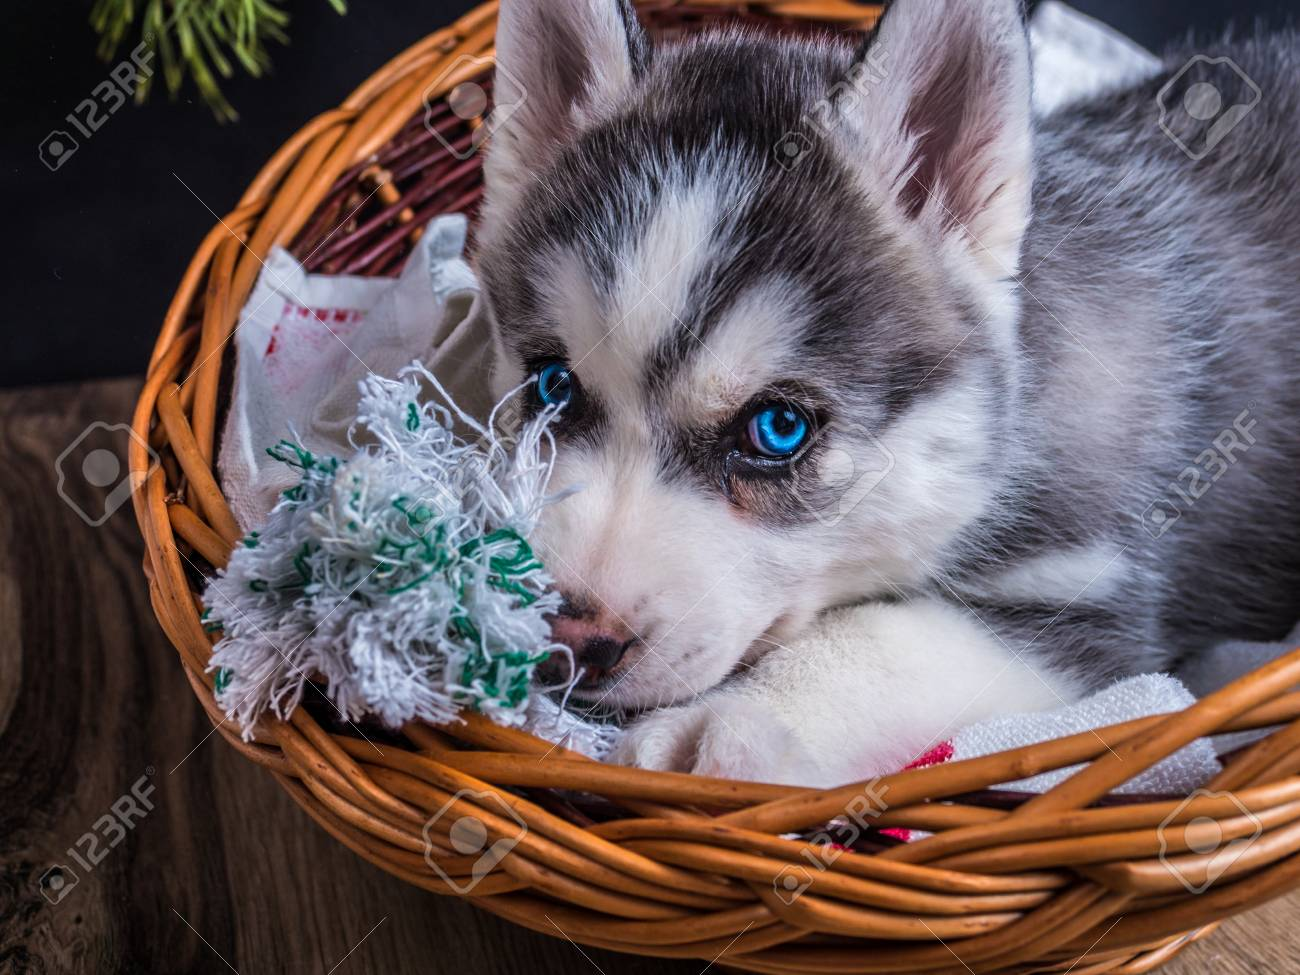 Cute Siberian Husky Puppy With Blue Eyes In The Basket Stock Photo Picture And Royalty Free Image Image 56966234